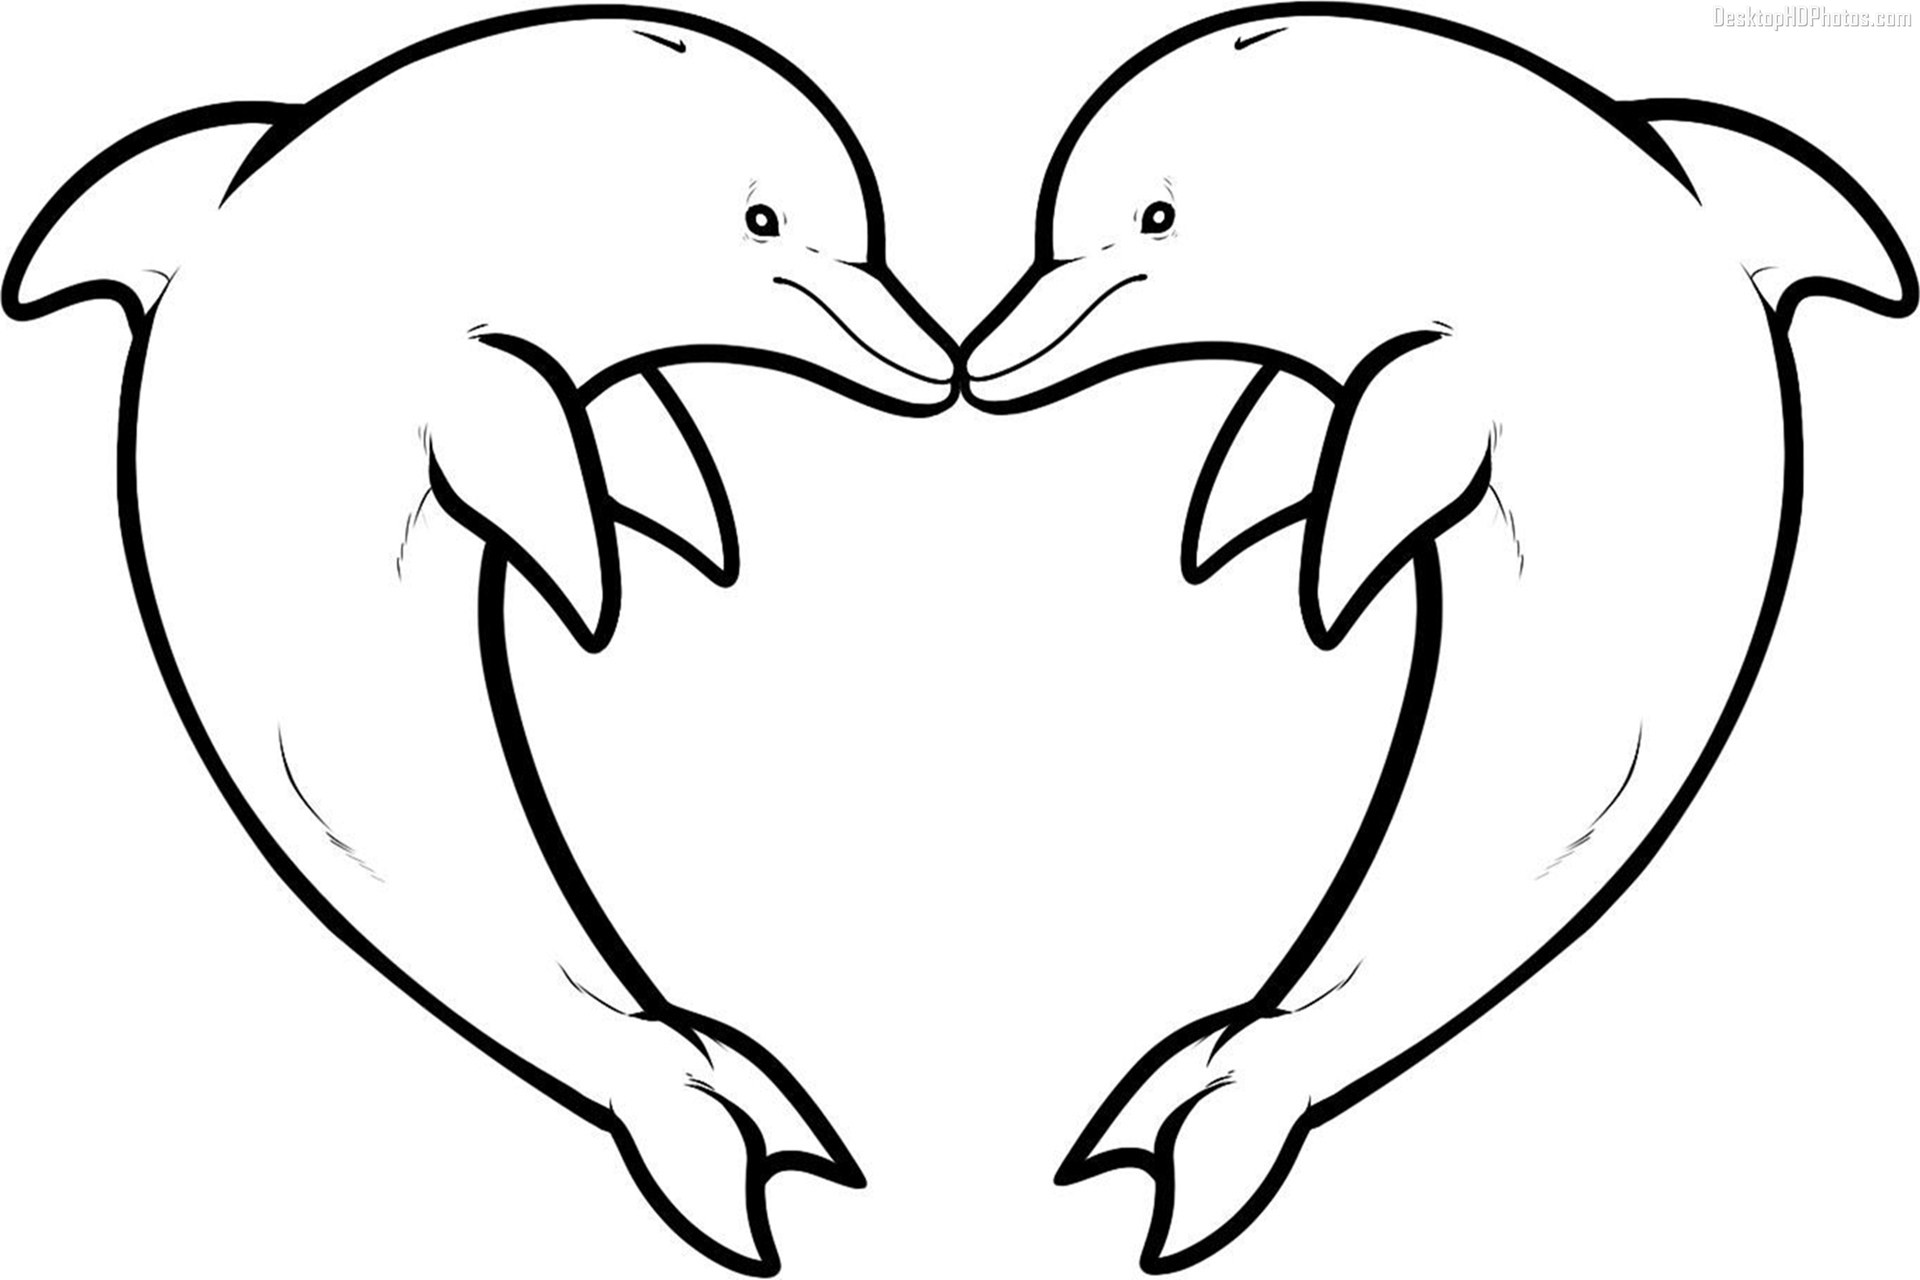 dolphin printable coloring pages free printable dolphin coloring pages for kids pages printable coloring dolphin